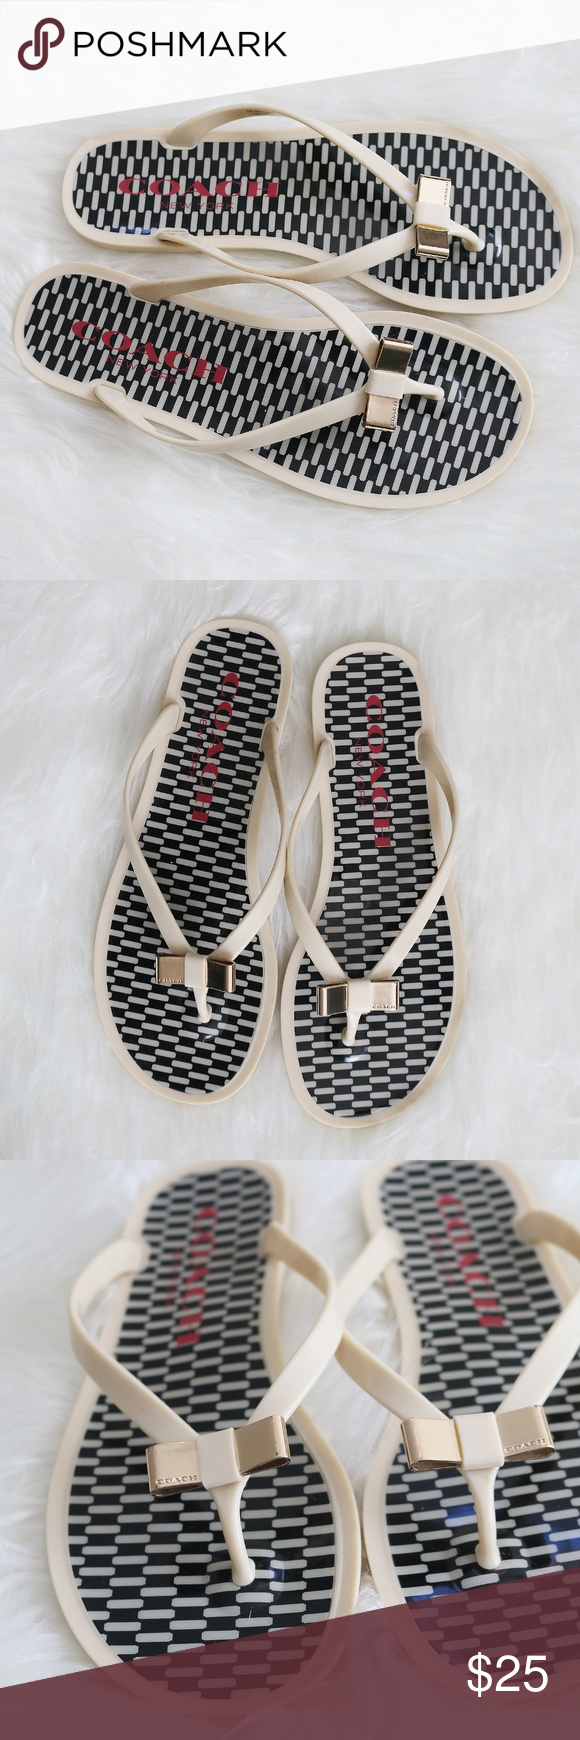 13bebf758e603 COACH Landon Jelly Flip Flops Cream Black 7B COACH Landon jelly flip flops.  Cream and black. Gold bow. Clean. Only noticeable wear is on the bottom.